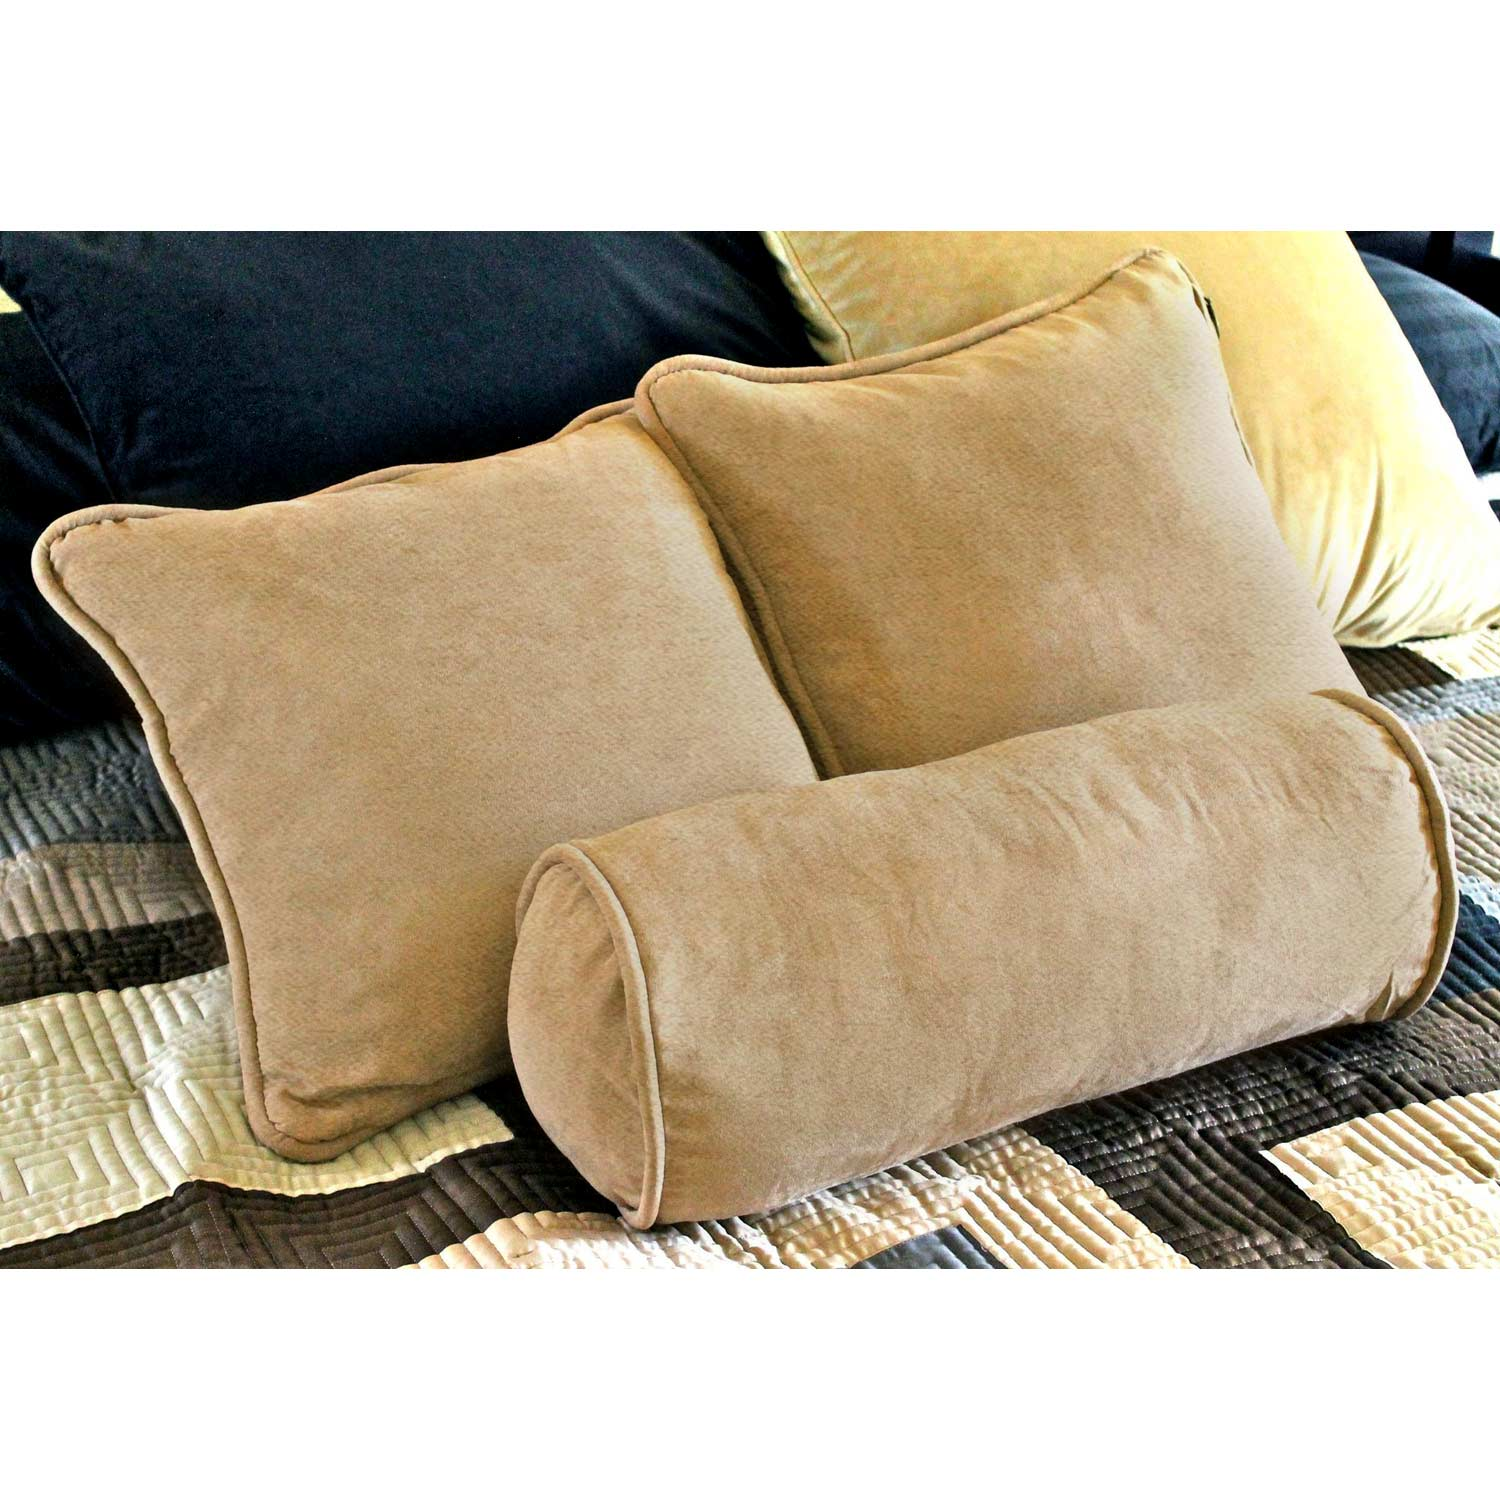 Microsuede 18'' Pillows and Bolster Set